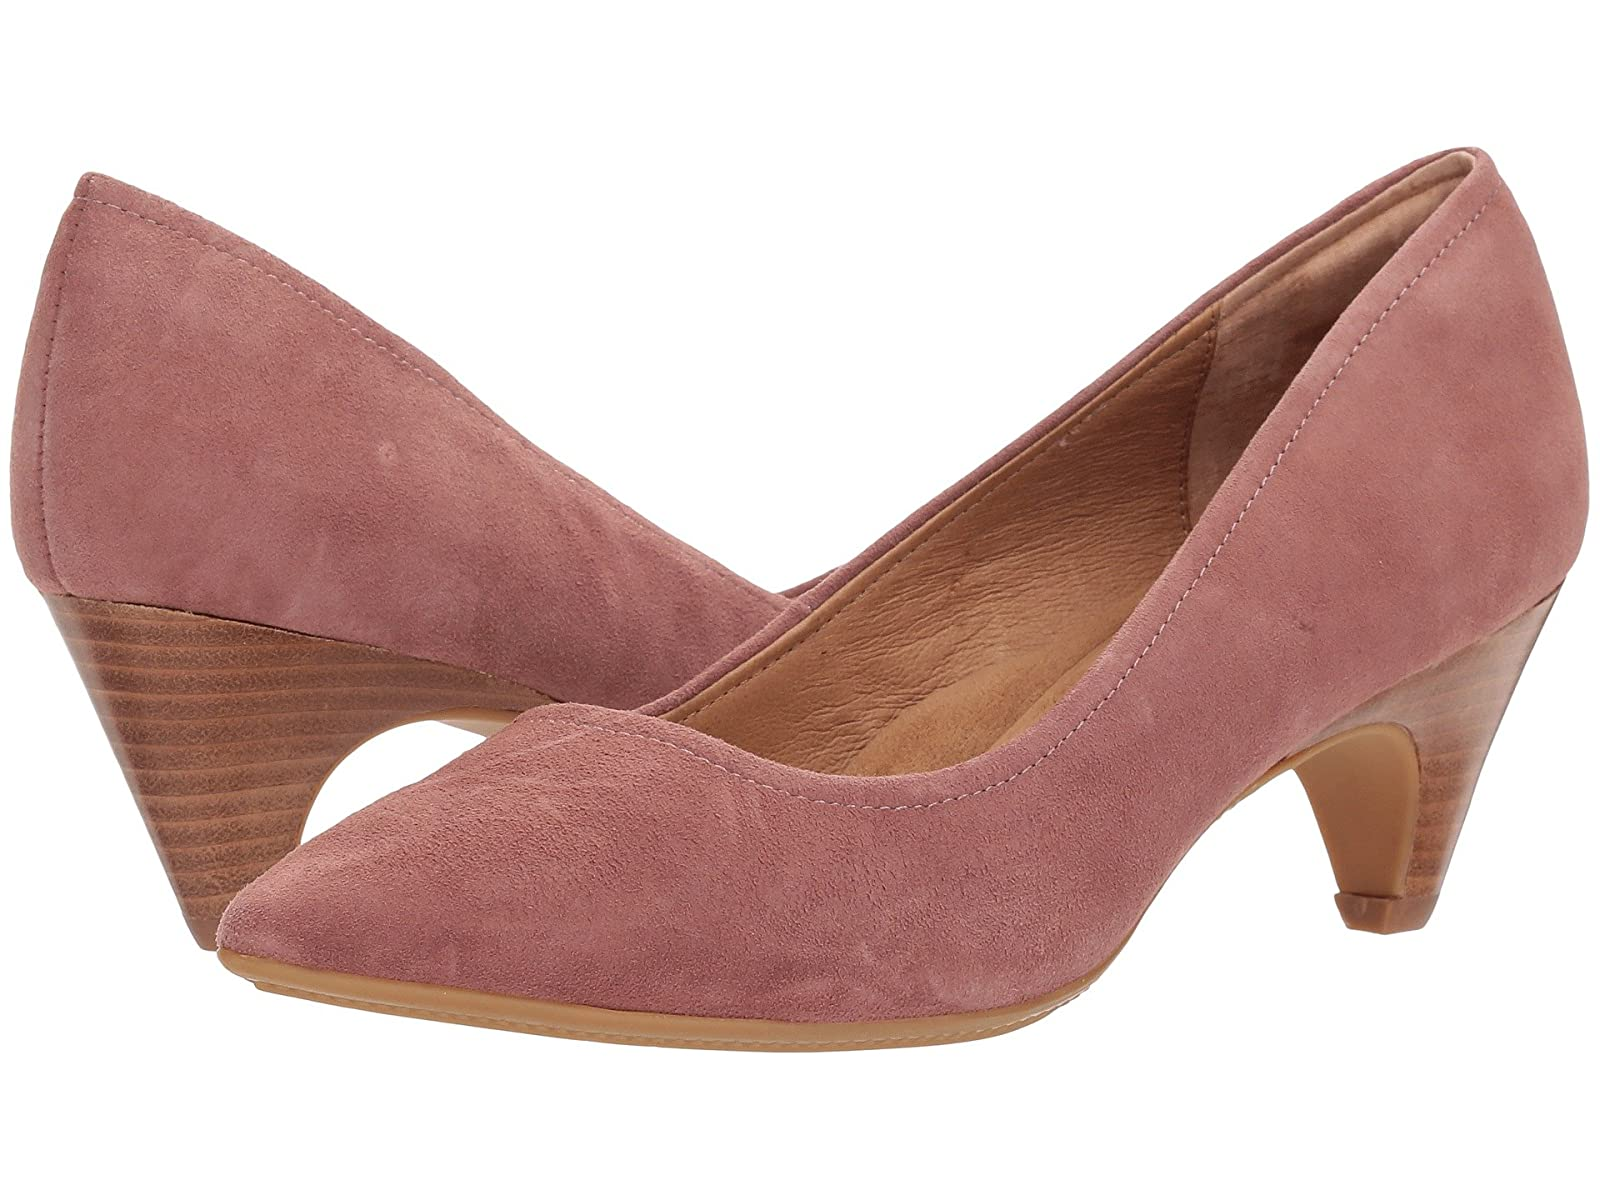 Sofft Altessa IICheap and distinctive eye-catching shoes